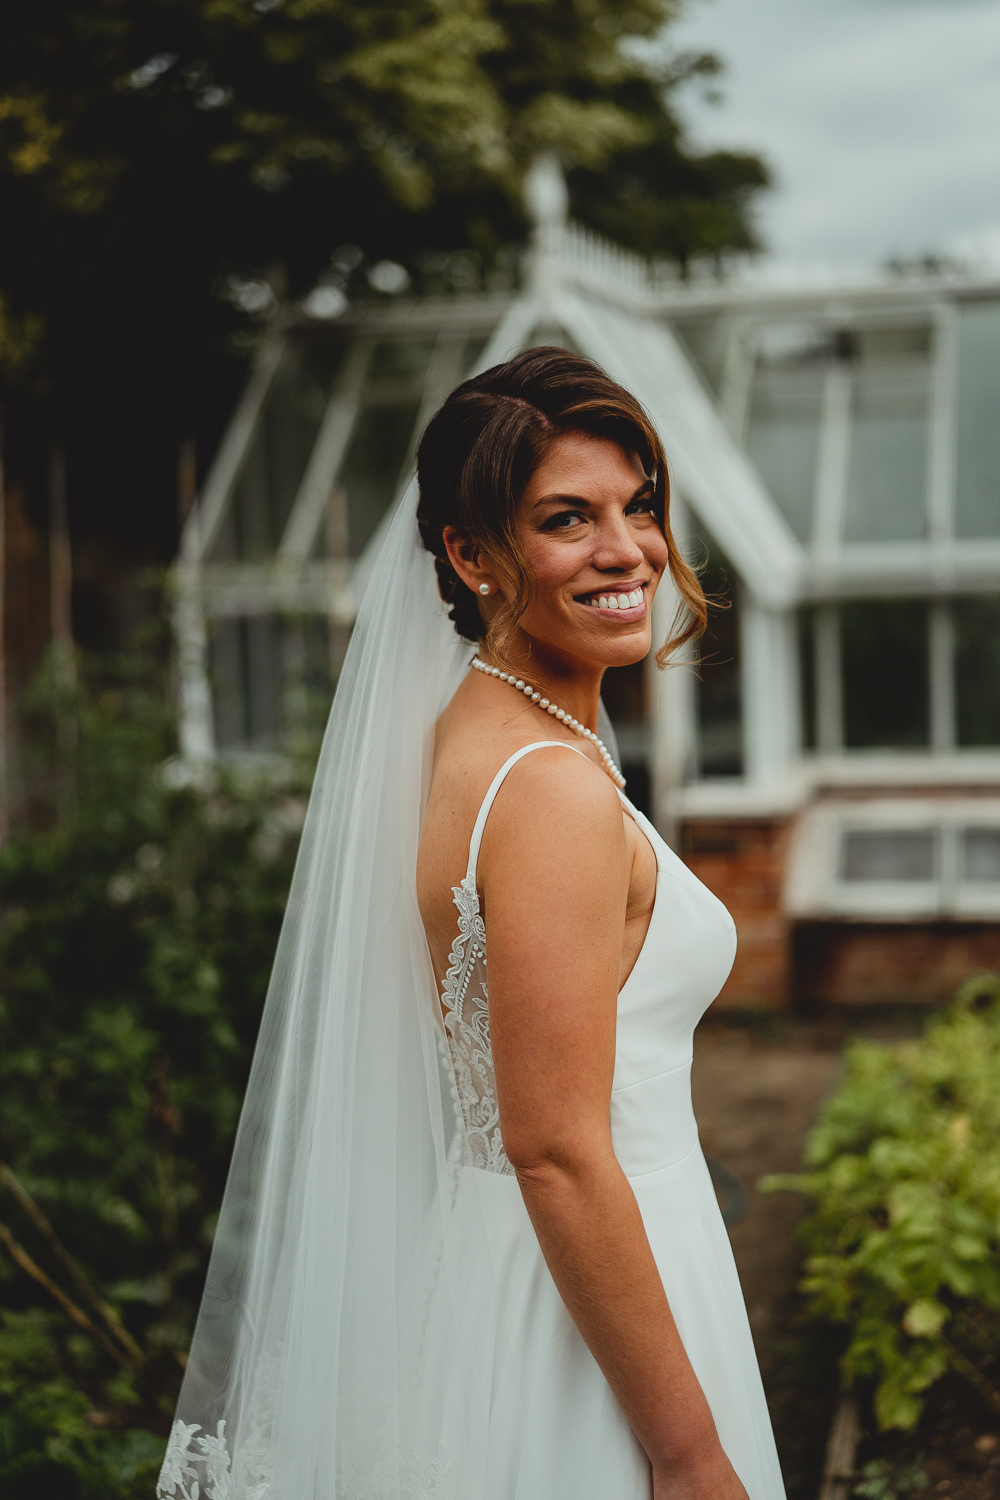 Bride Bridal Strappy Sleeveless Lace V Neck Dress Gown Veil Pearl Necklace British Countryside Wedding Georgia Rachael Photography